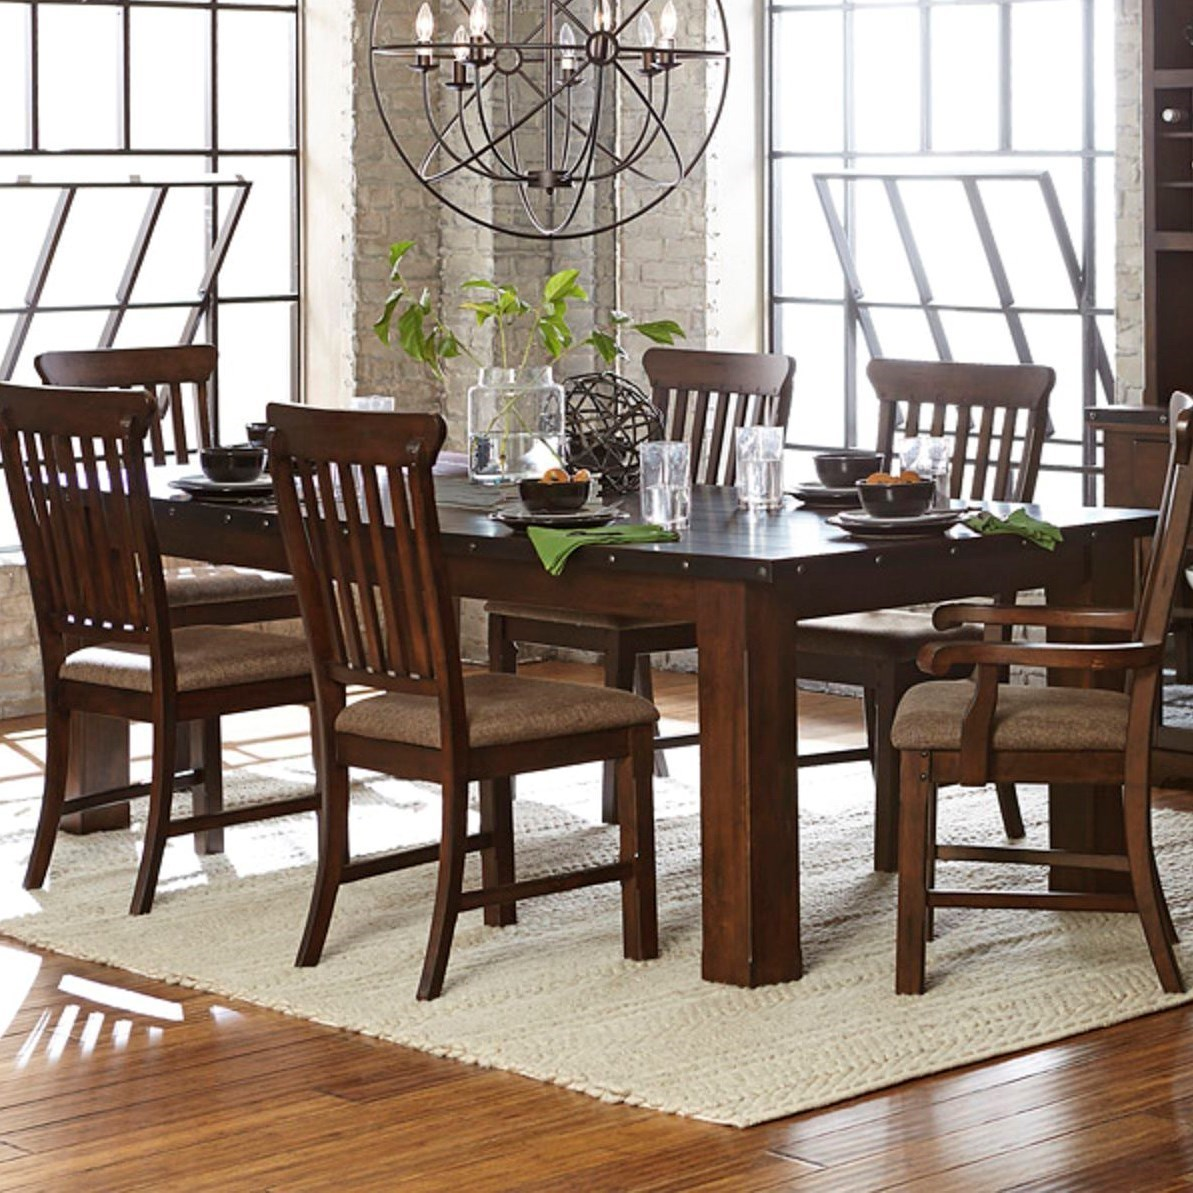 Homelegance Schleiger Industrial Dining Table With Metal Trim And Decorative Nail Heads Beck 39 S